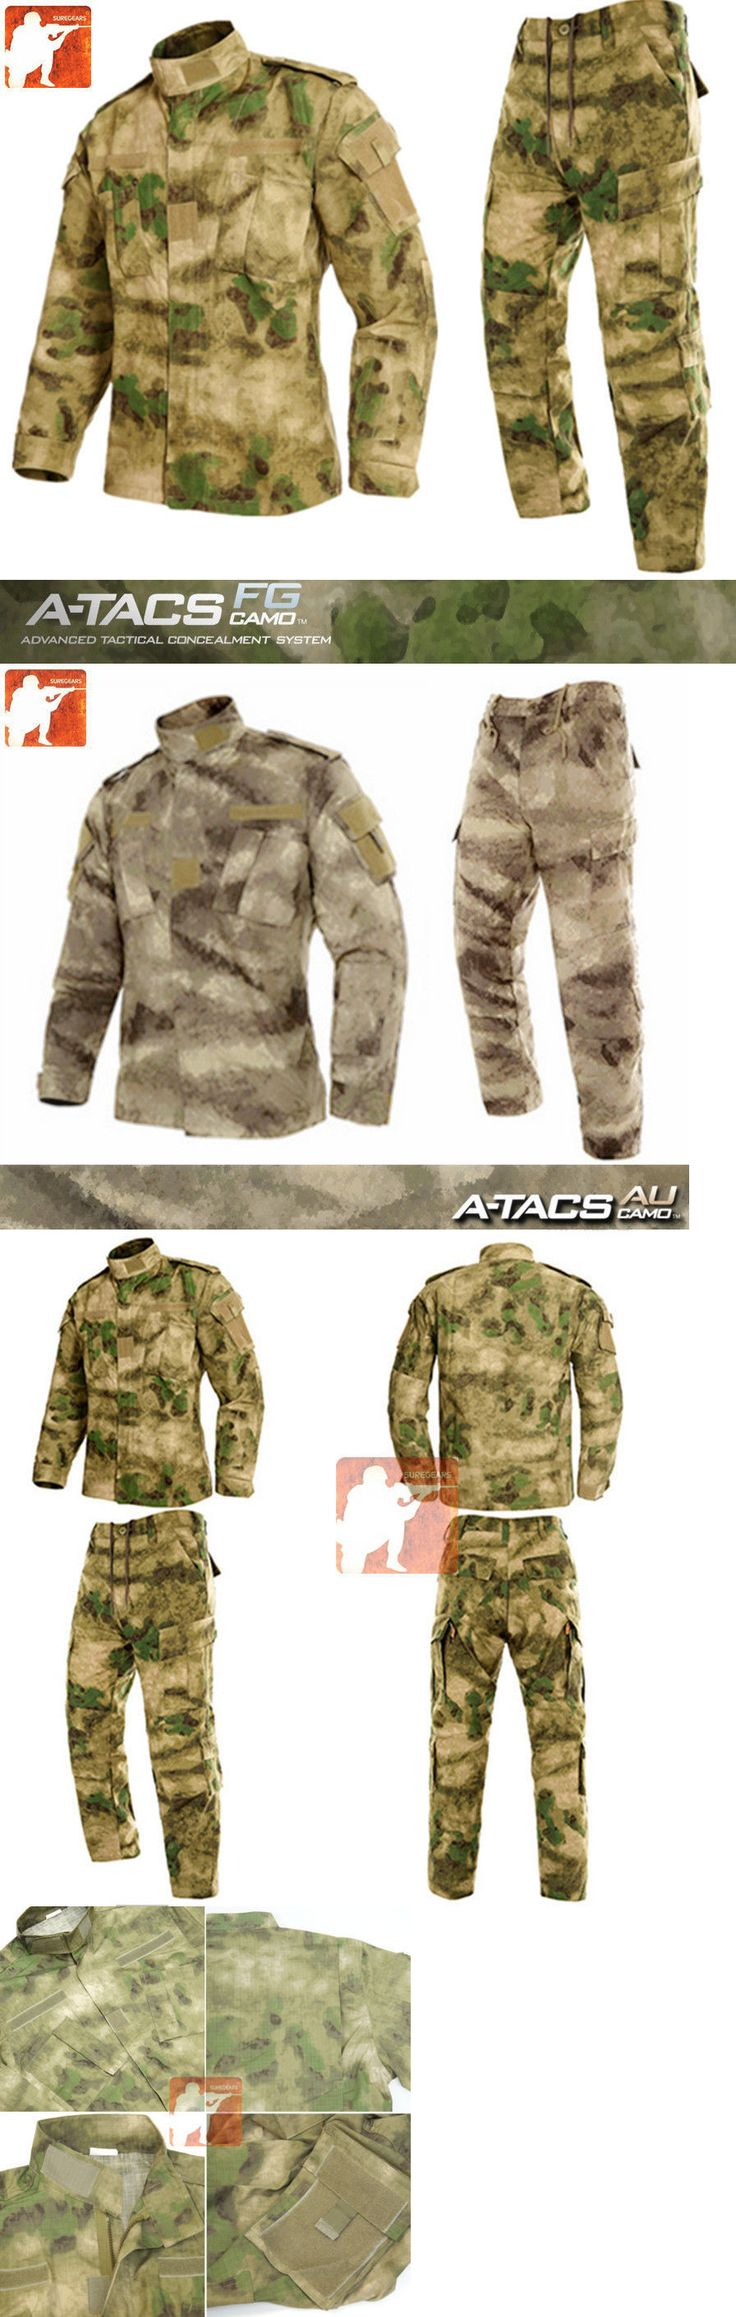 Jacket and Pant Sets 177872: A-Tacs Fg Au Military Bdu Tactical Uniform Shirt Pants Hunting Airsoft Suit Set -> BUY IT NOW ONLY: $43.99 on eBay!